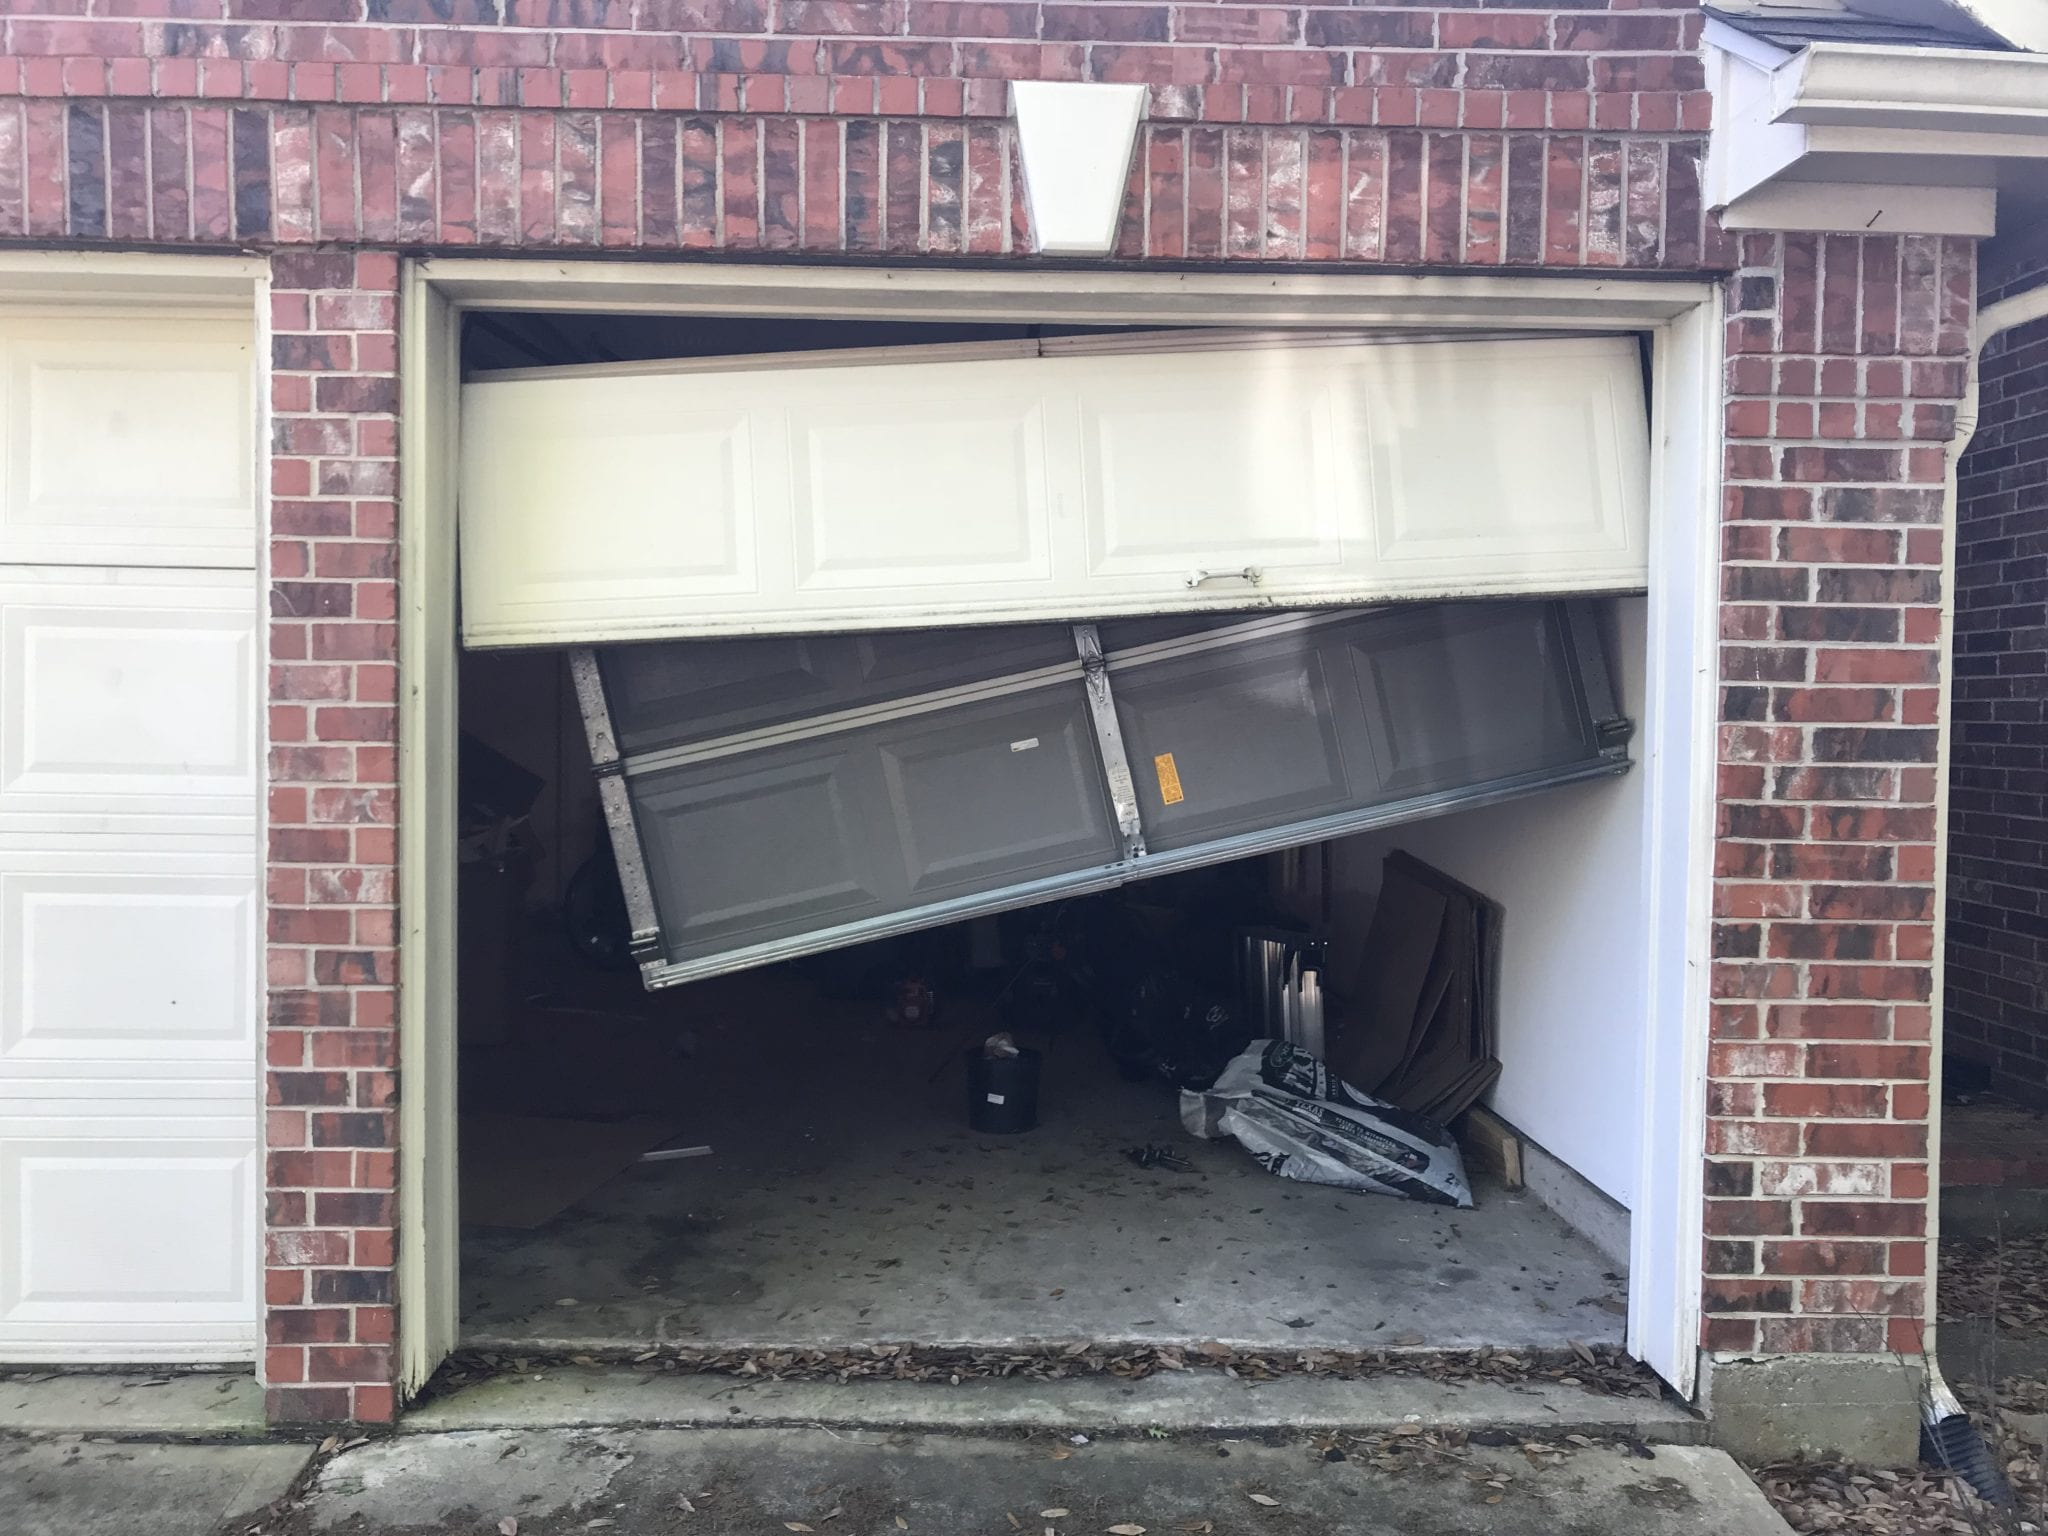 Garage door off the rollers